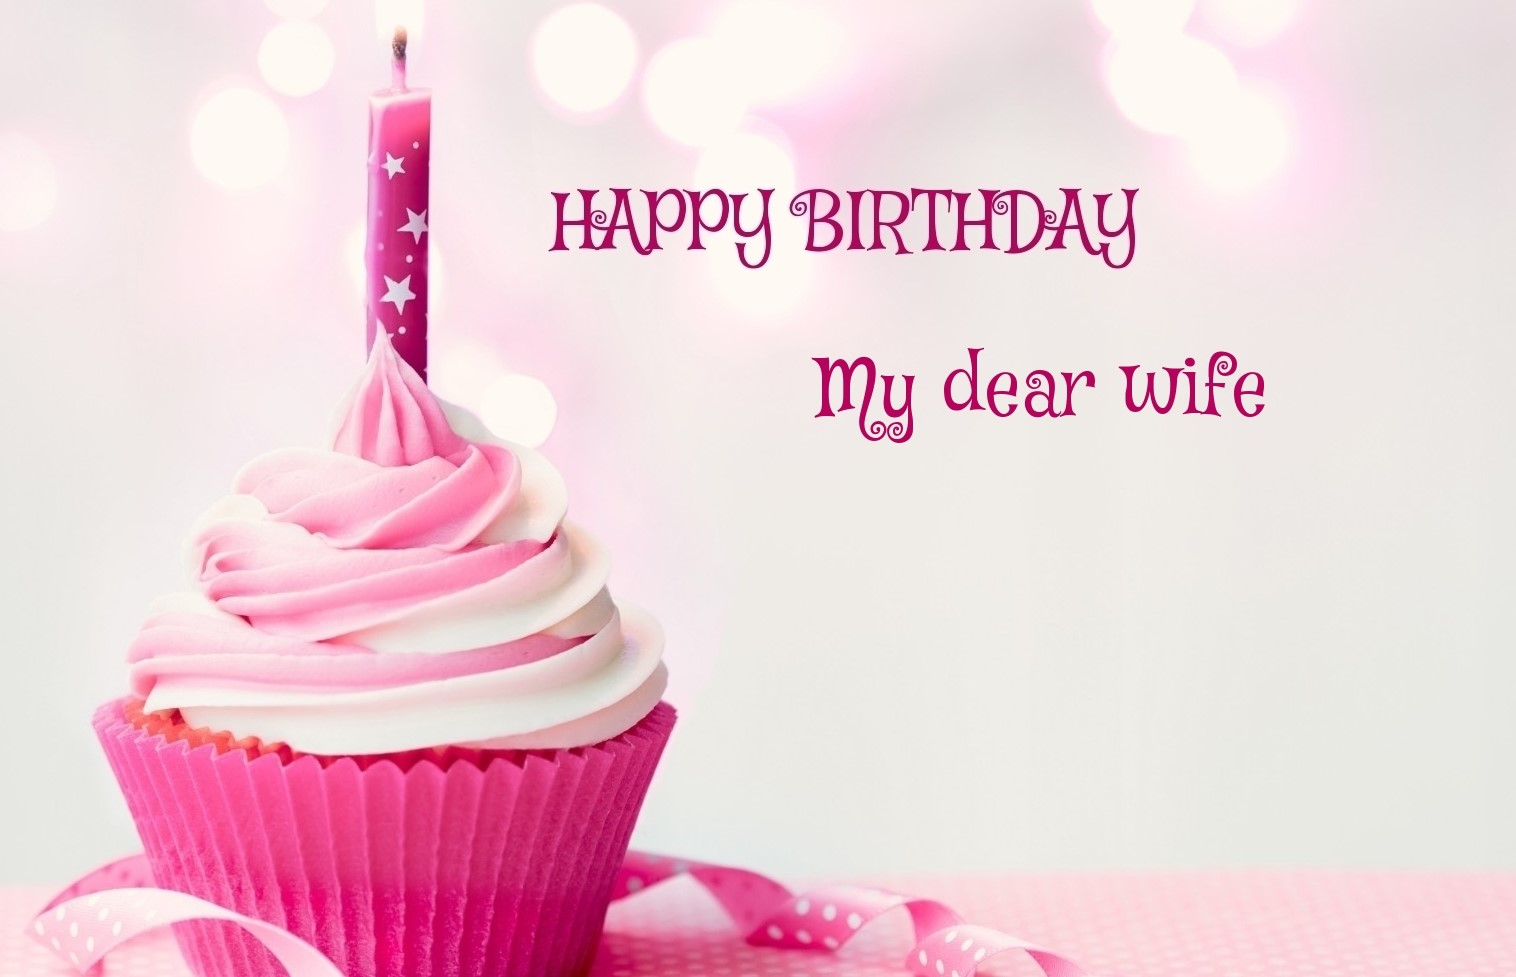 happy birthday wife images ; happy-birthday-cupcake-candle-pink-picture-for-My-dear-wife